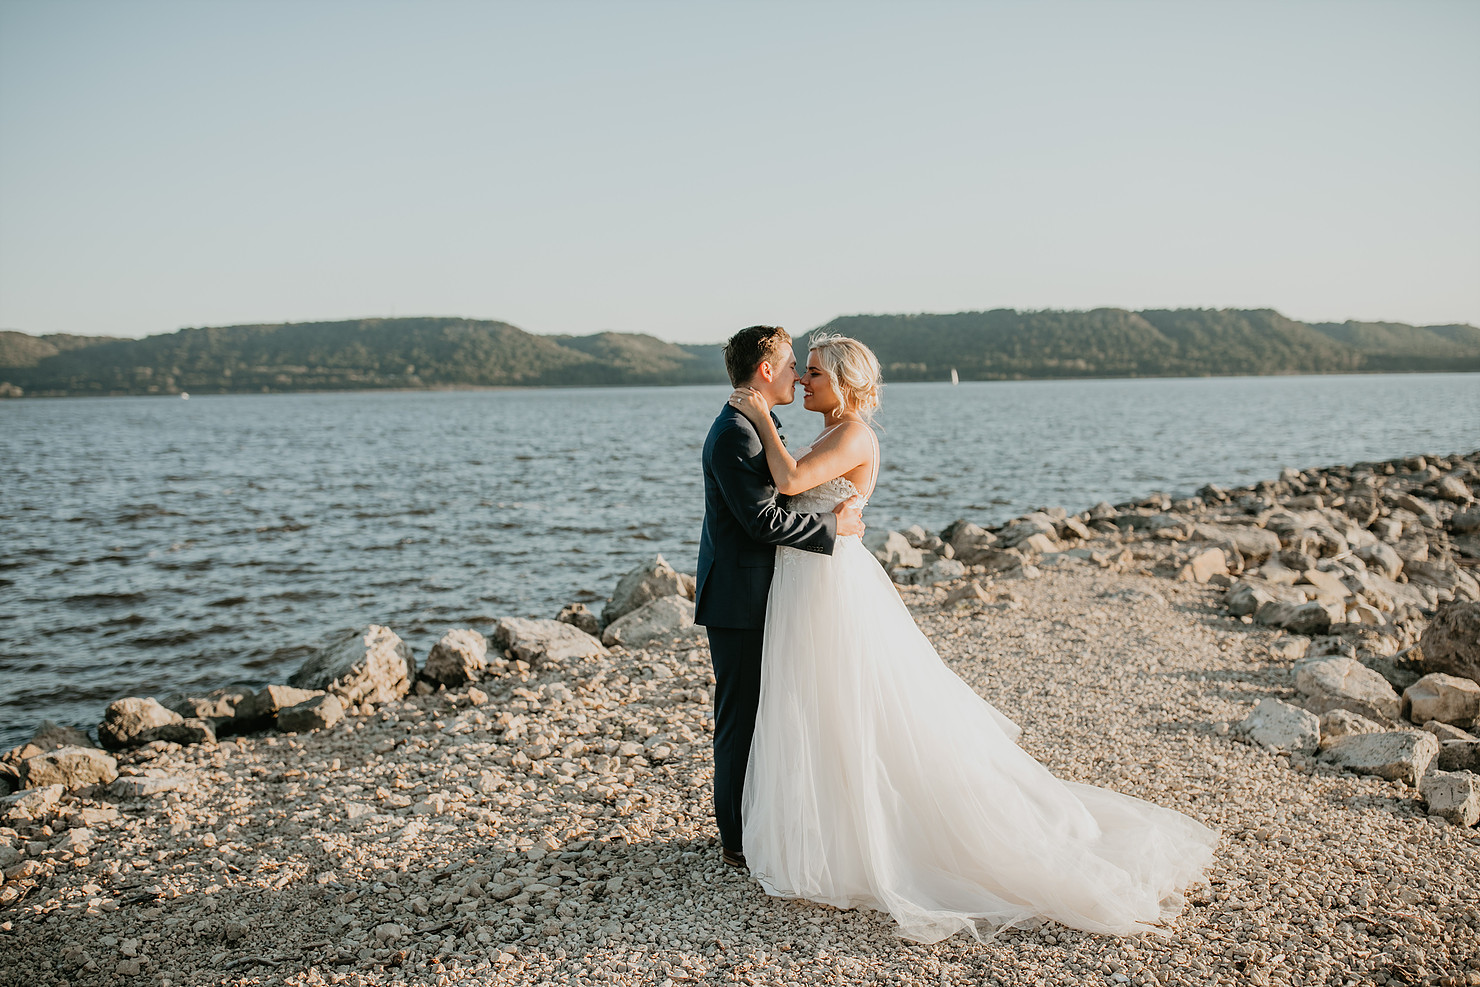 Maddi & Chris Married 9/22/18 at Villa Belezza | Photography by    Sophisticated Grace